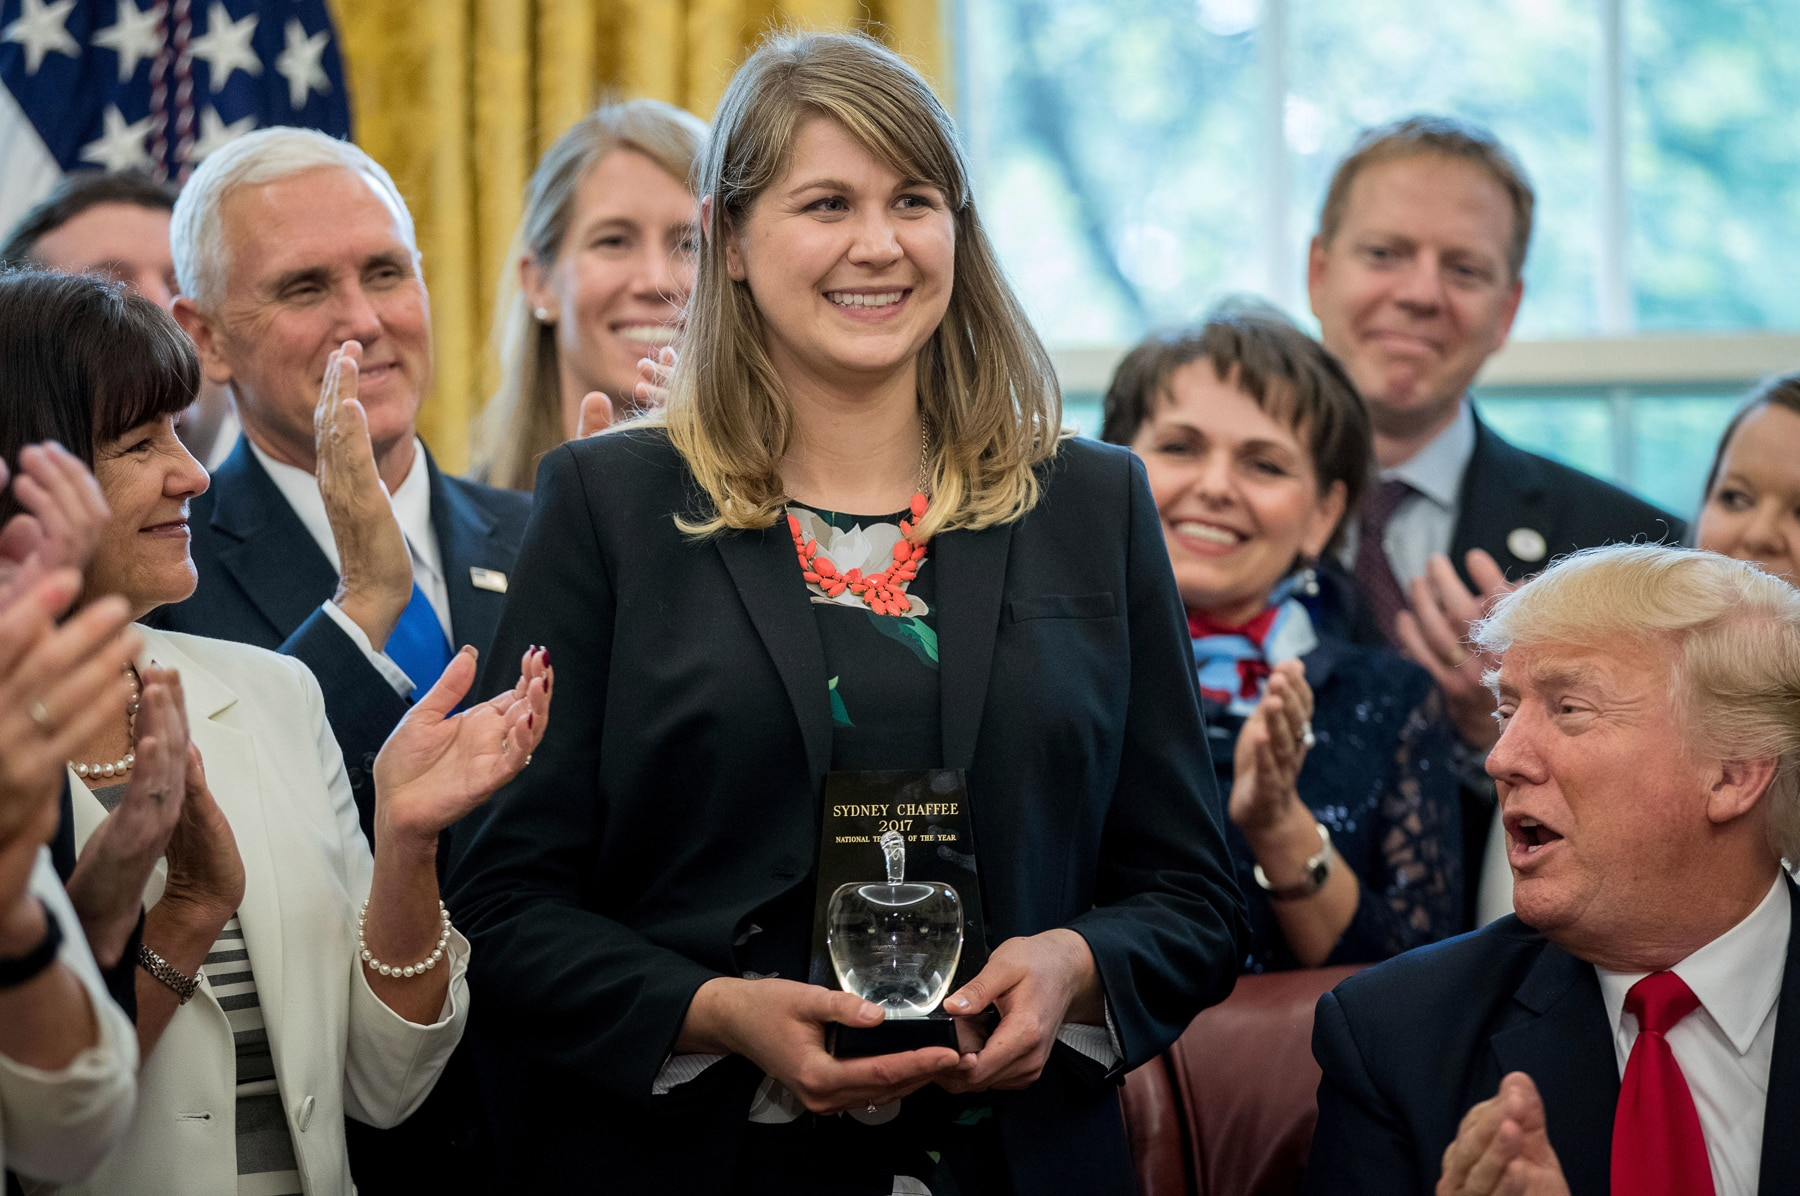 Woman holding award with people surrounding her applauding (© AP Images)